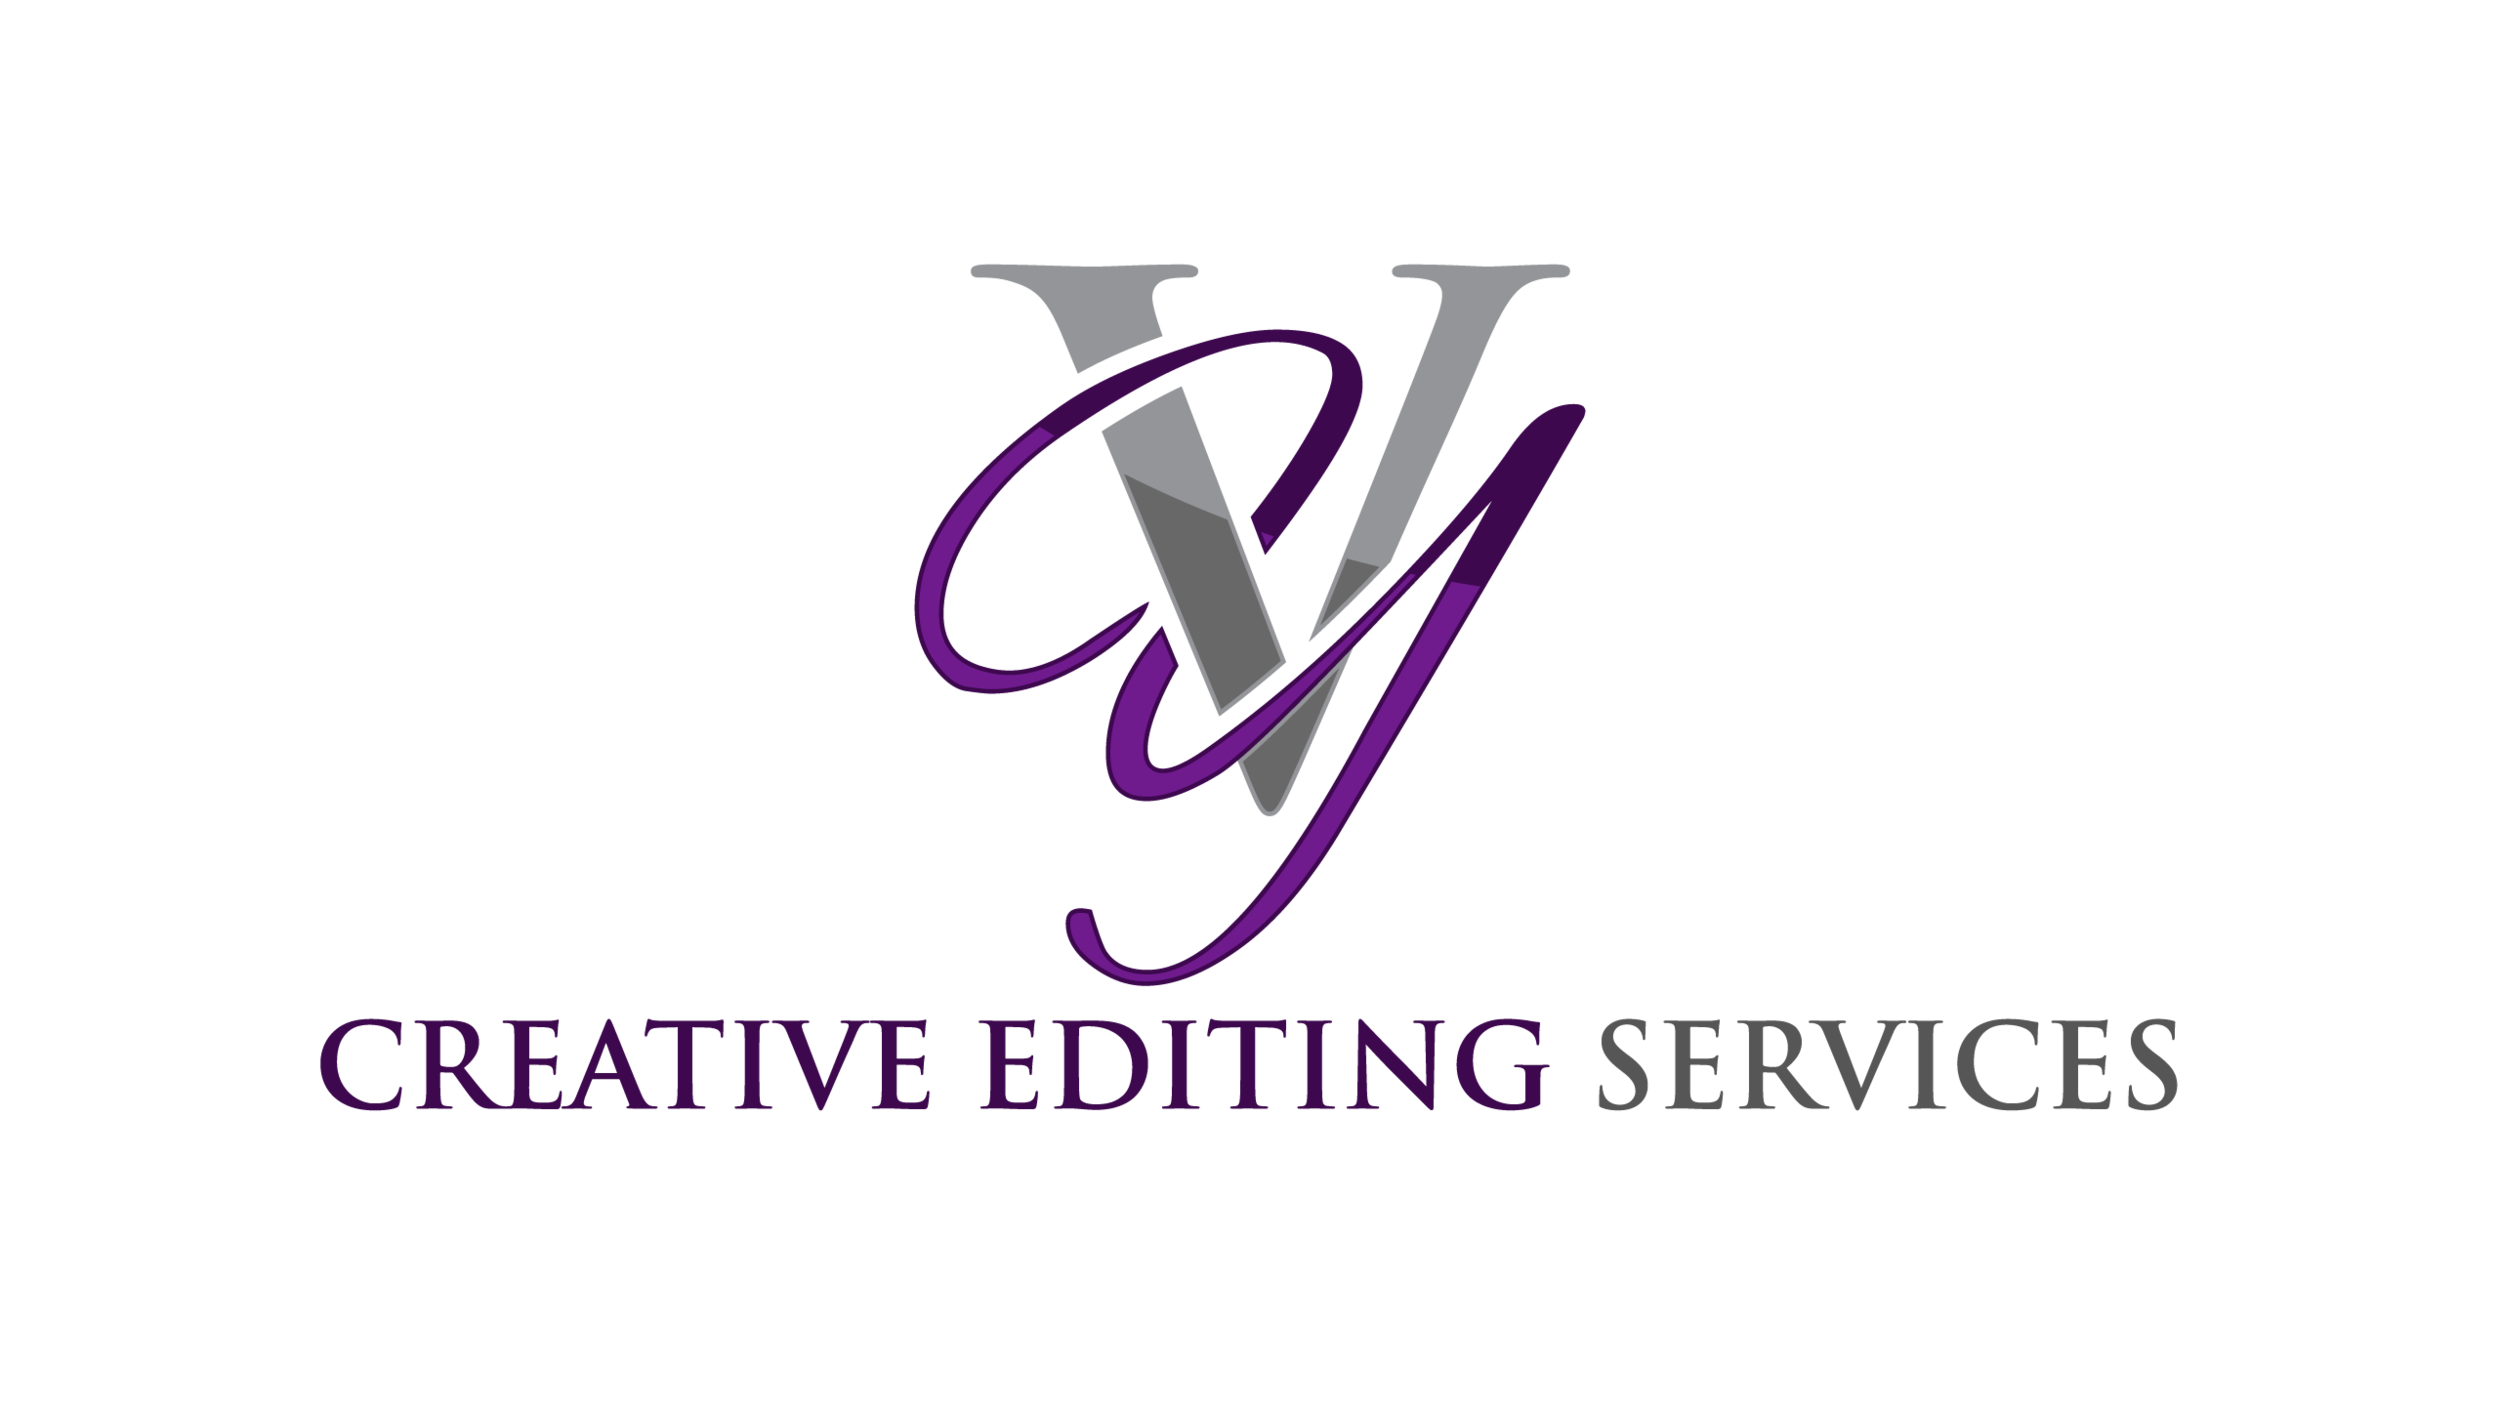 vonnie York creative editing services logo.png